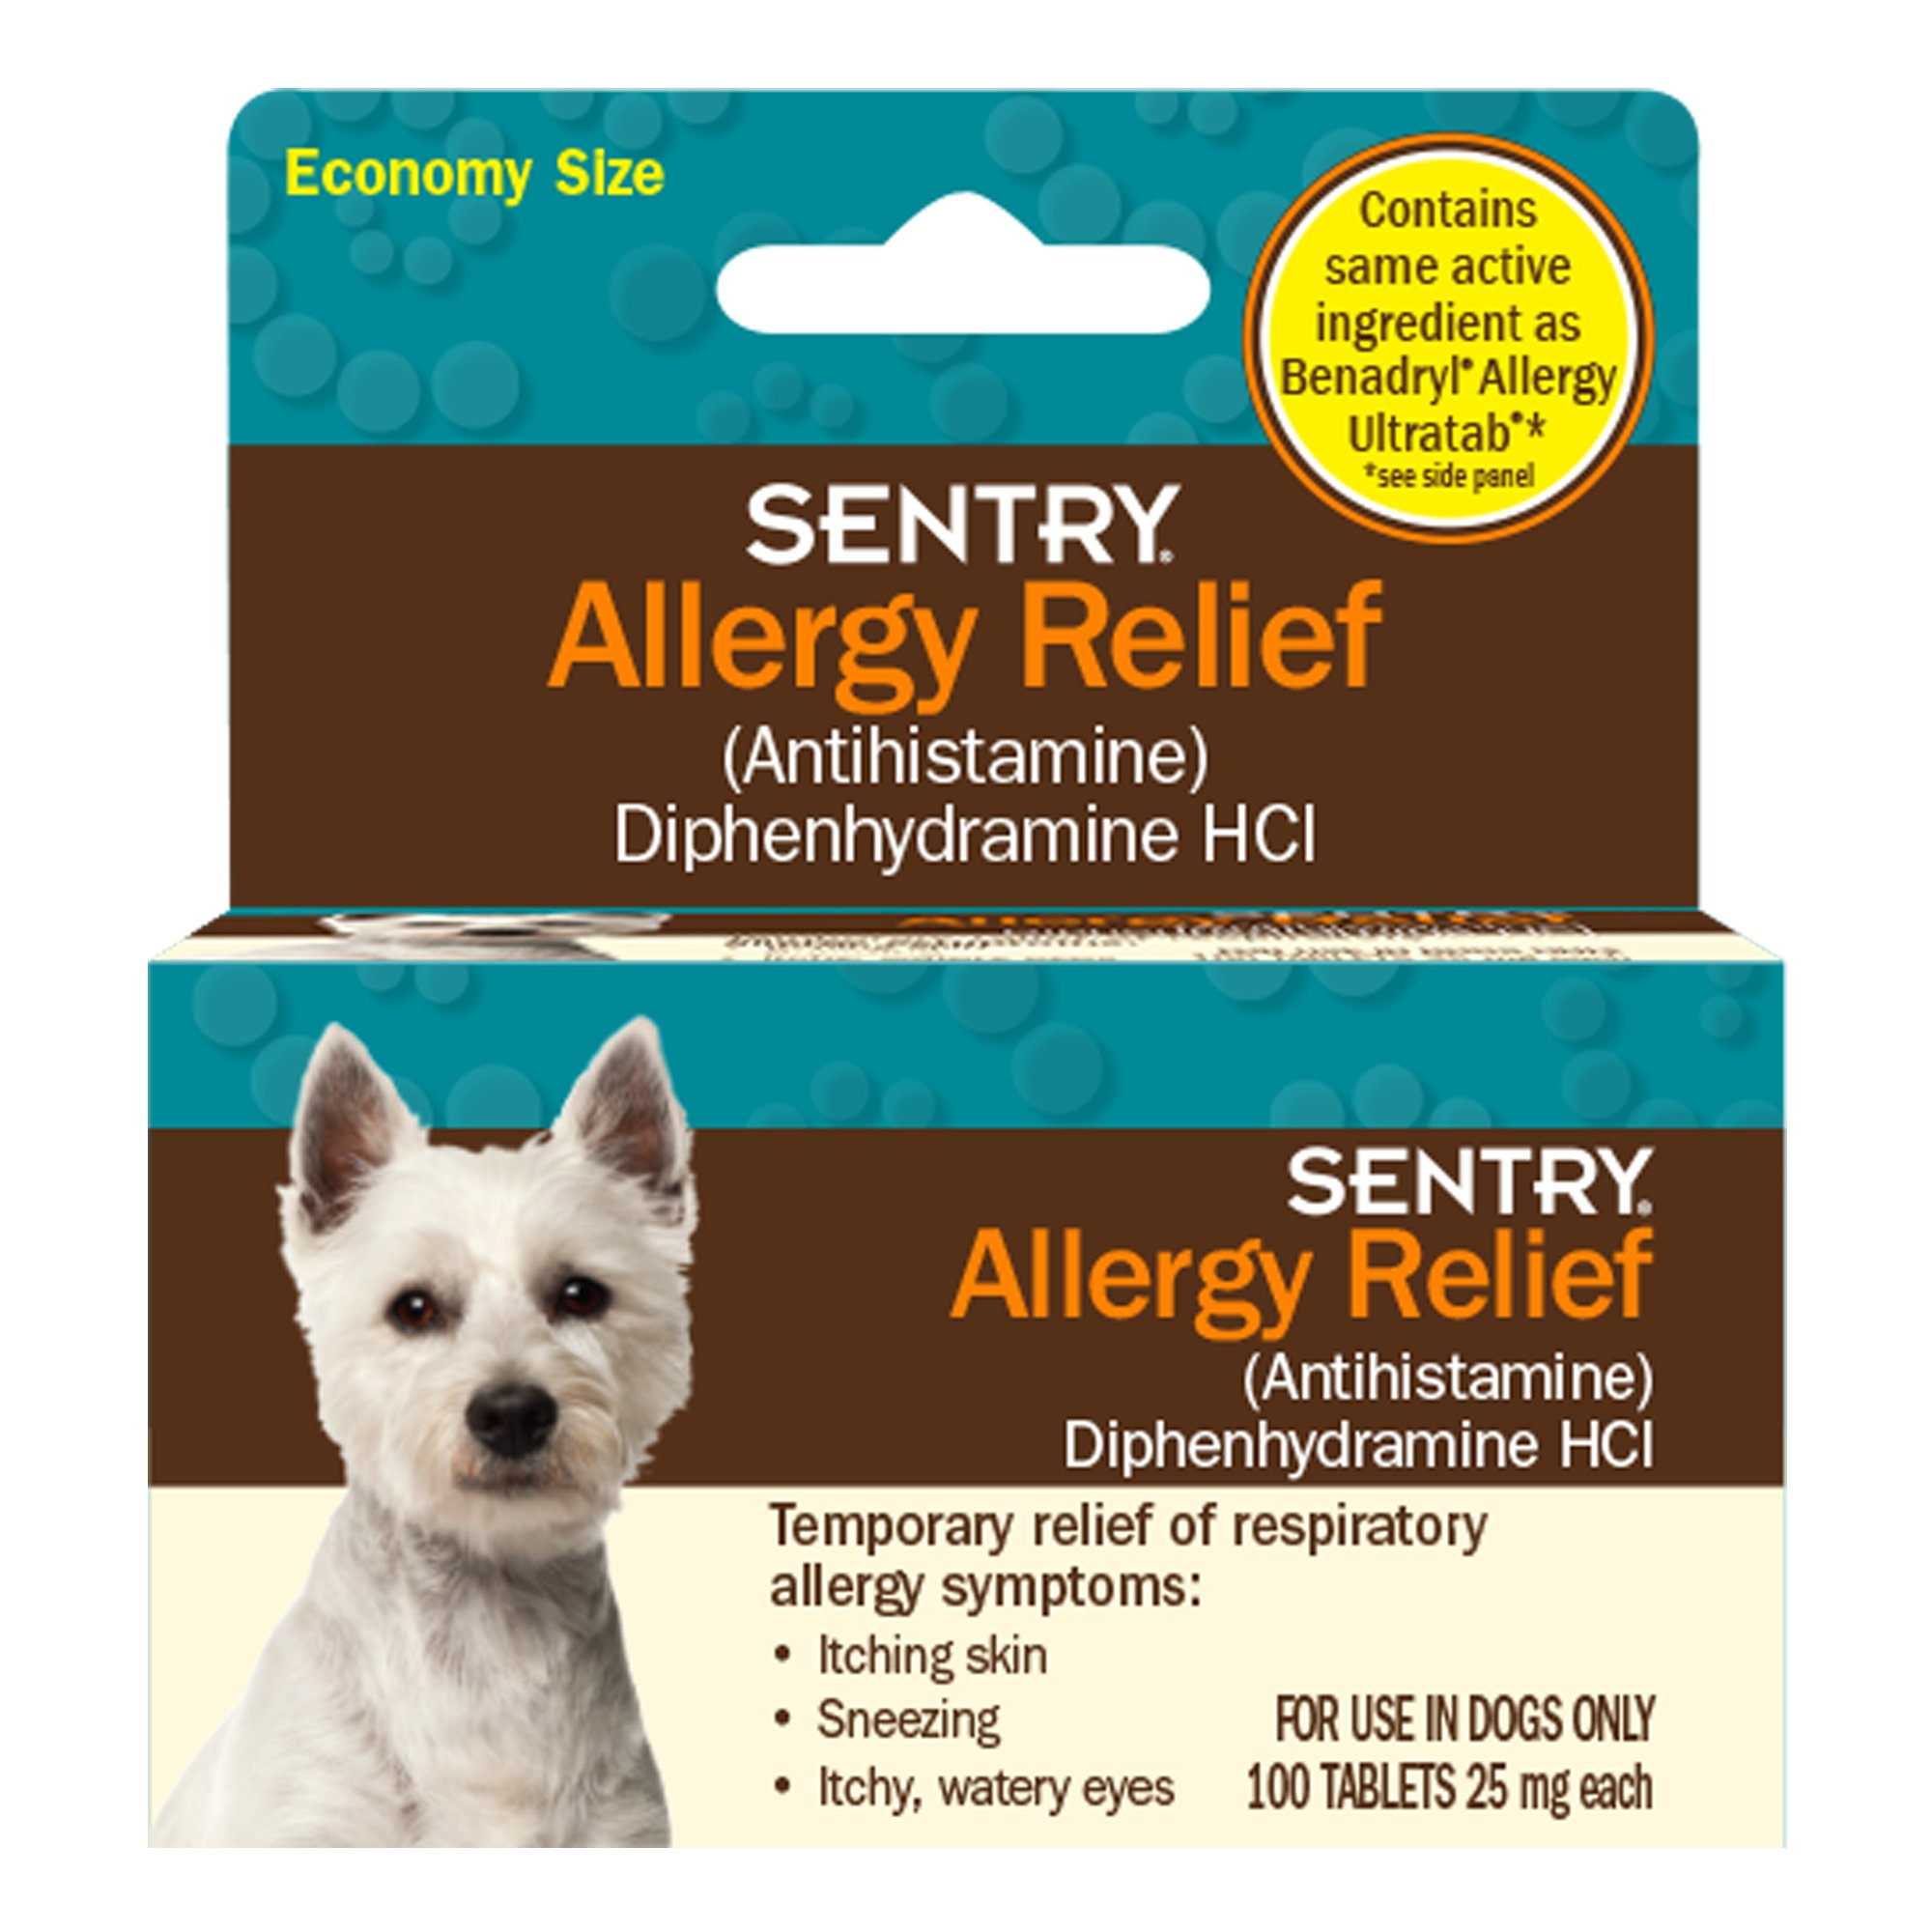 Sentry Allergy Relief Dog Tablets